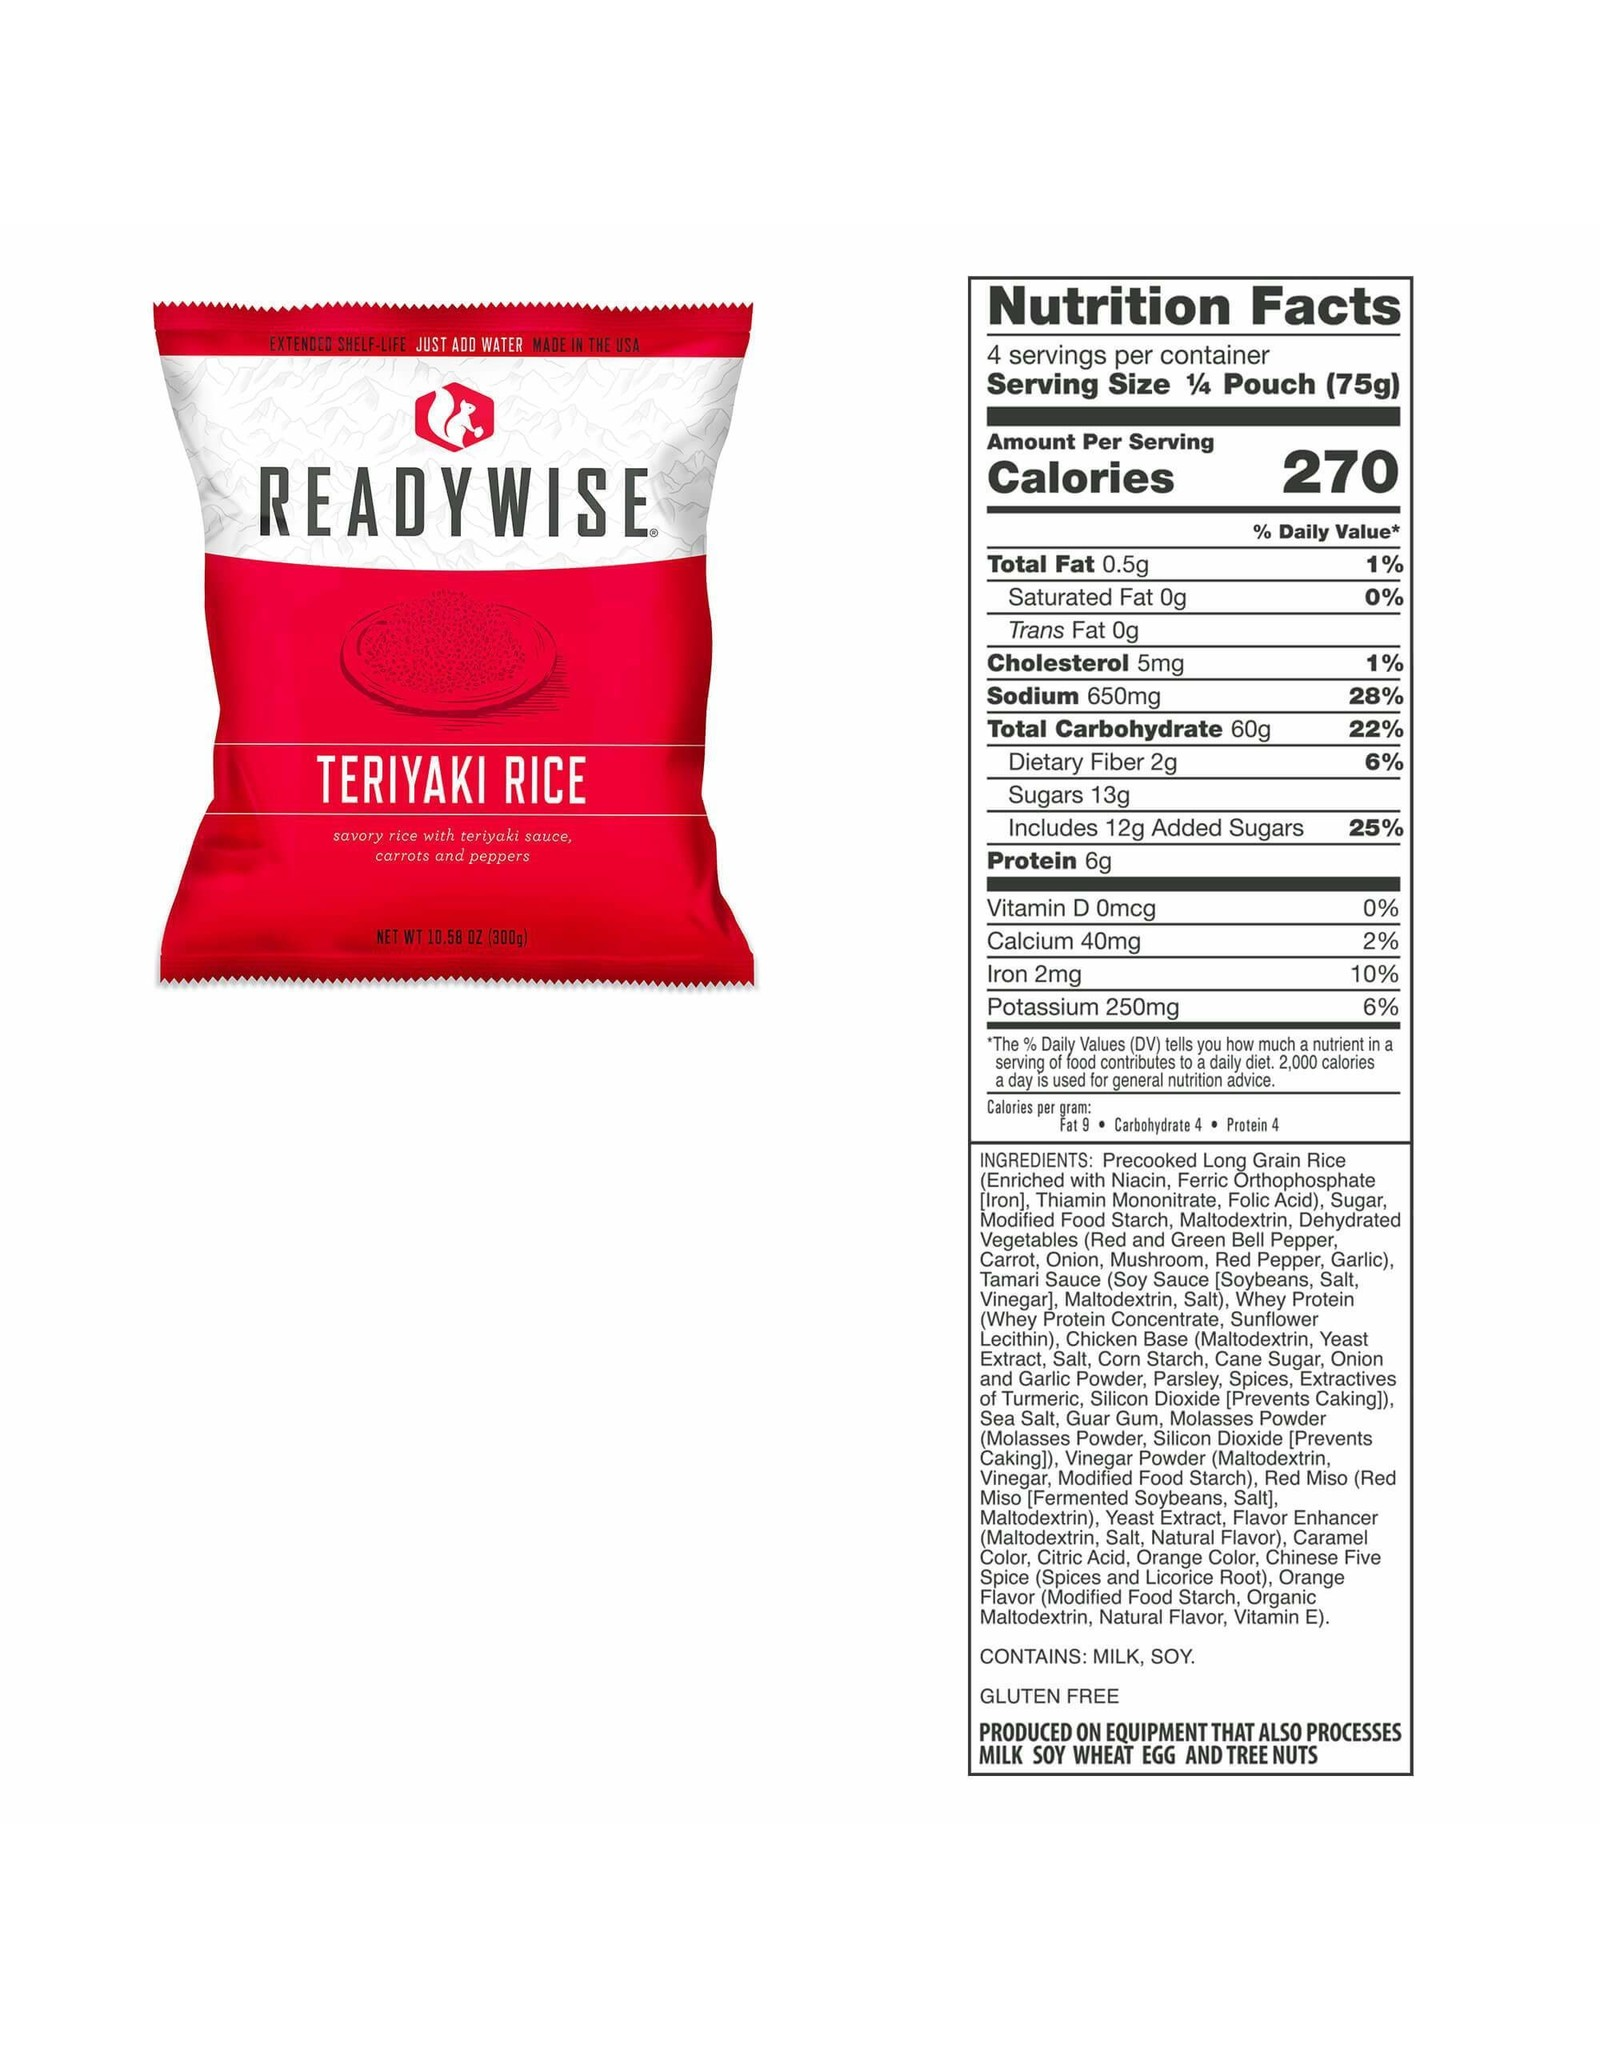 WISE COMPANY EMERGENCY FOOD SUPPLY (60 SERVINGS)